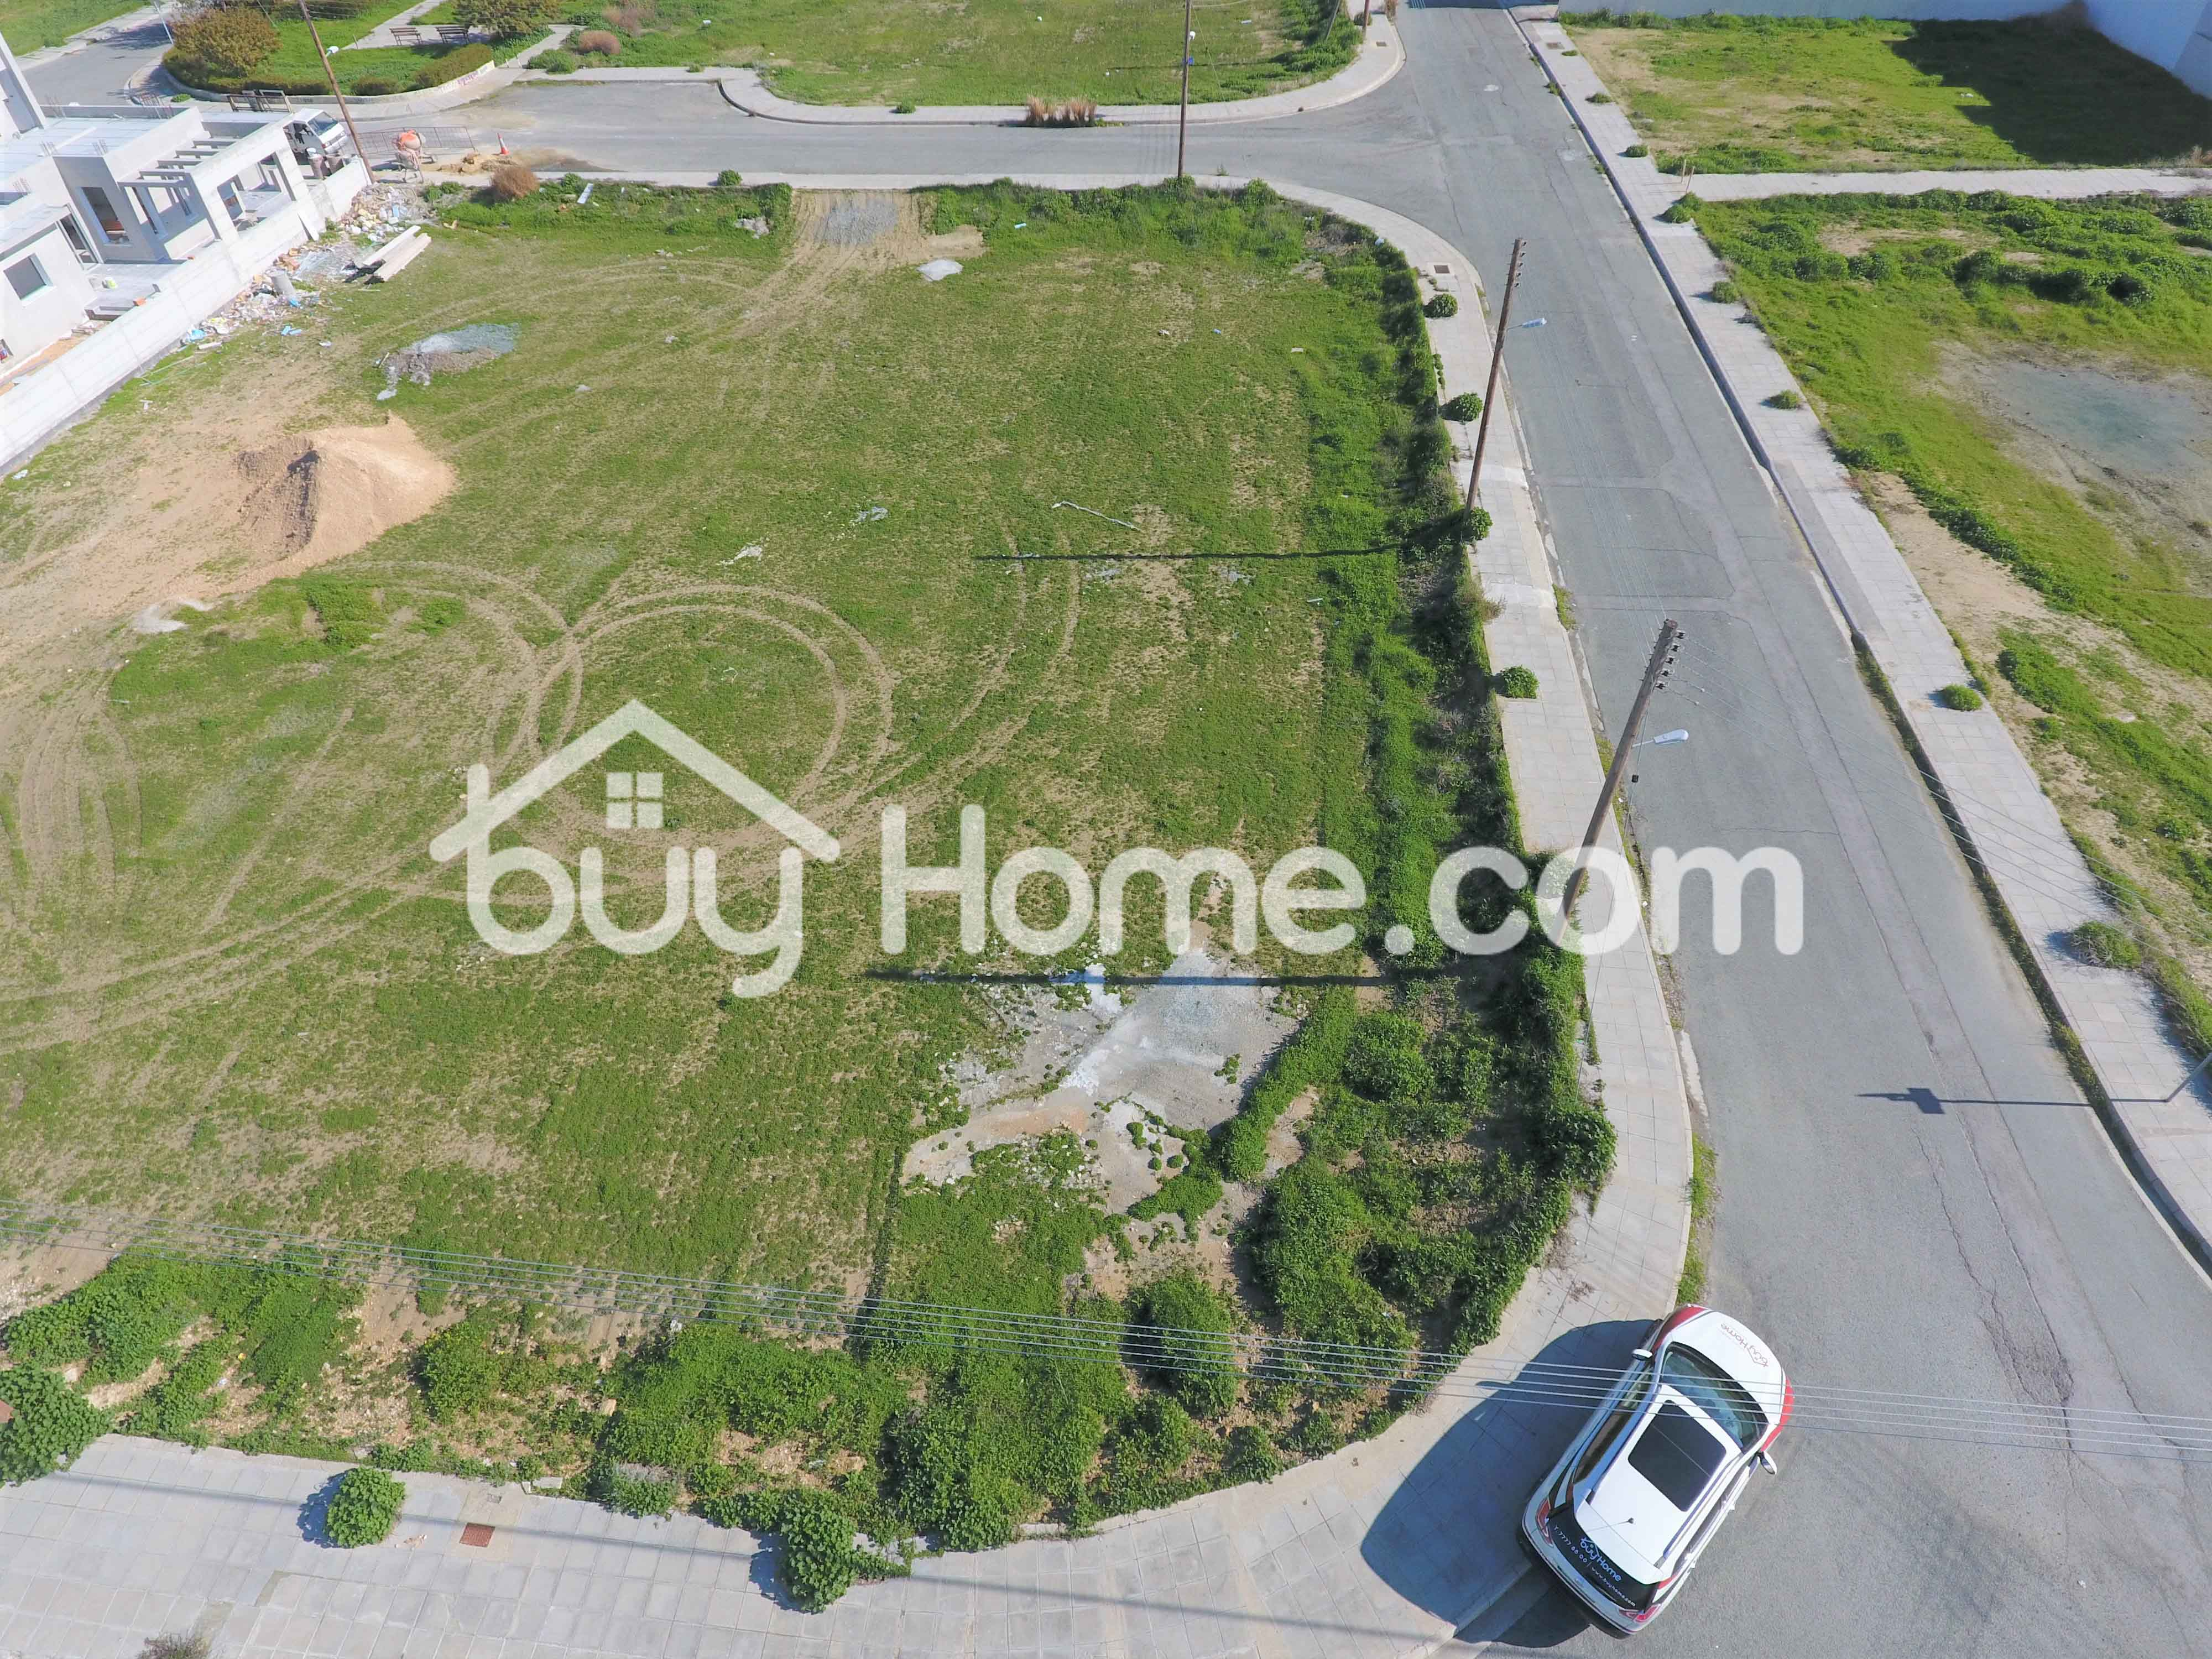 Residential Plot 673m2 | BuyHome